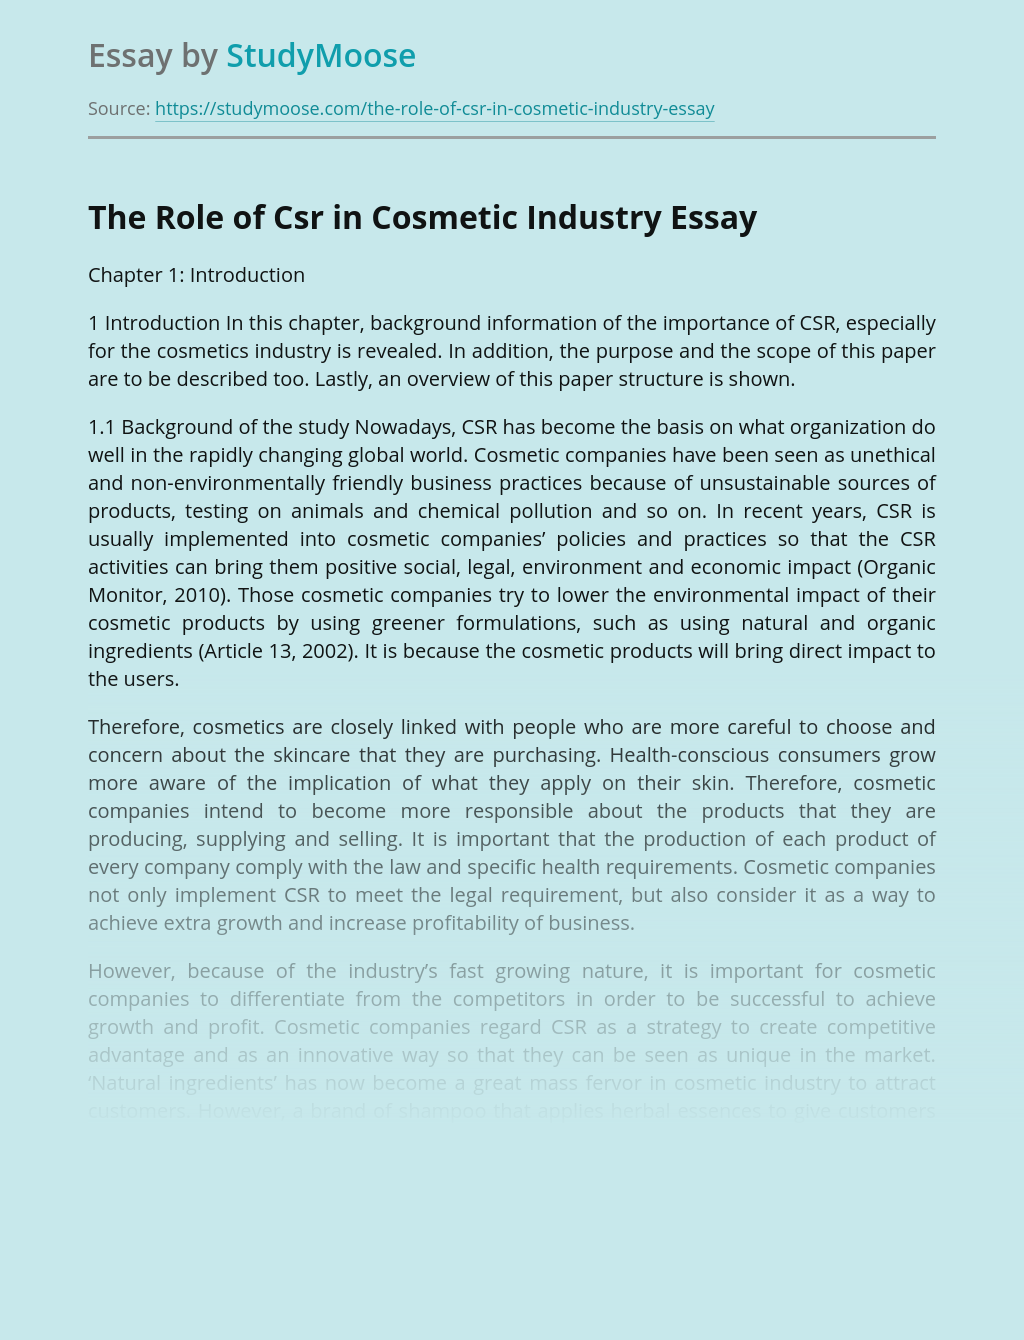 The Role of Csr in Cosmetic Industry